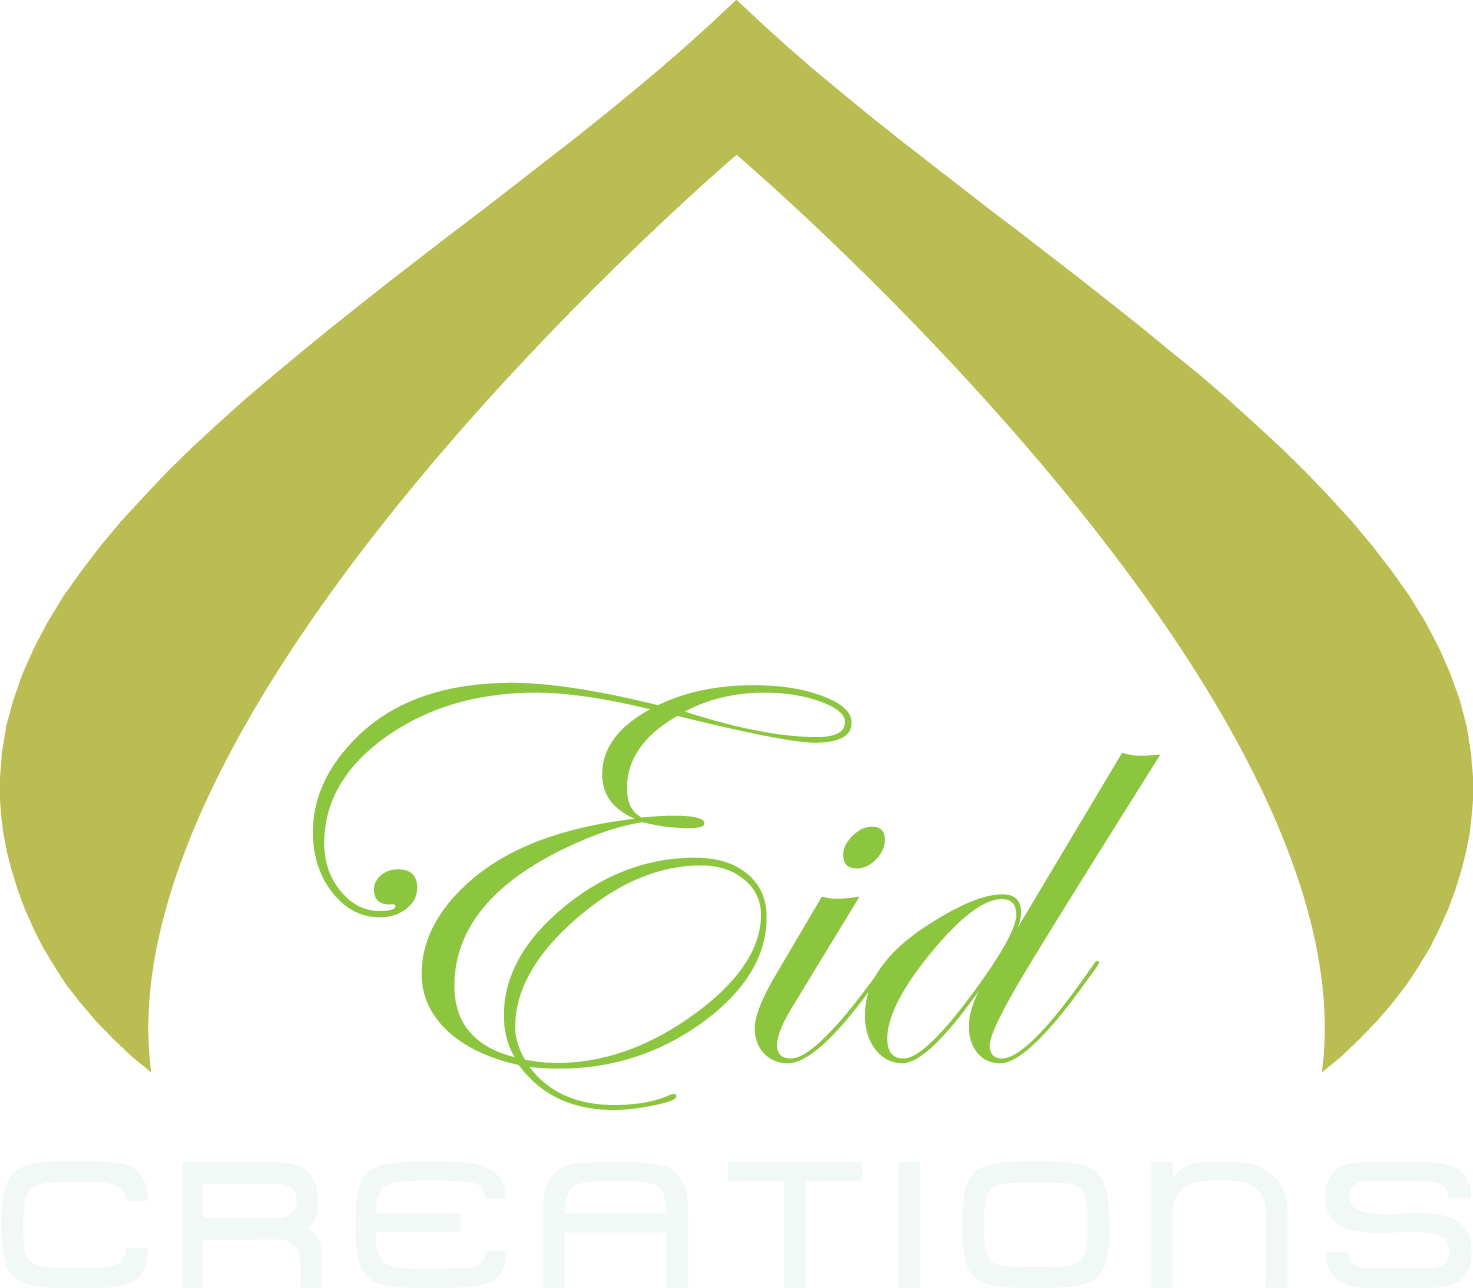 Simple Small House Eid Al-Fitr Decorations - 43d32e5f2fdafb3dd31de568d020c09c  Trends_492375 .png